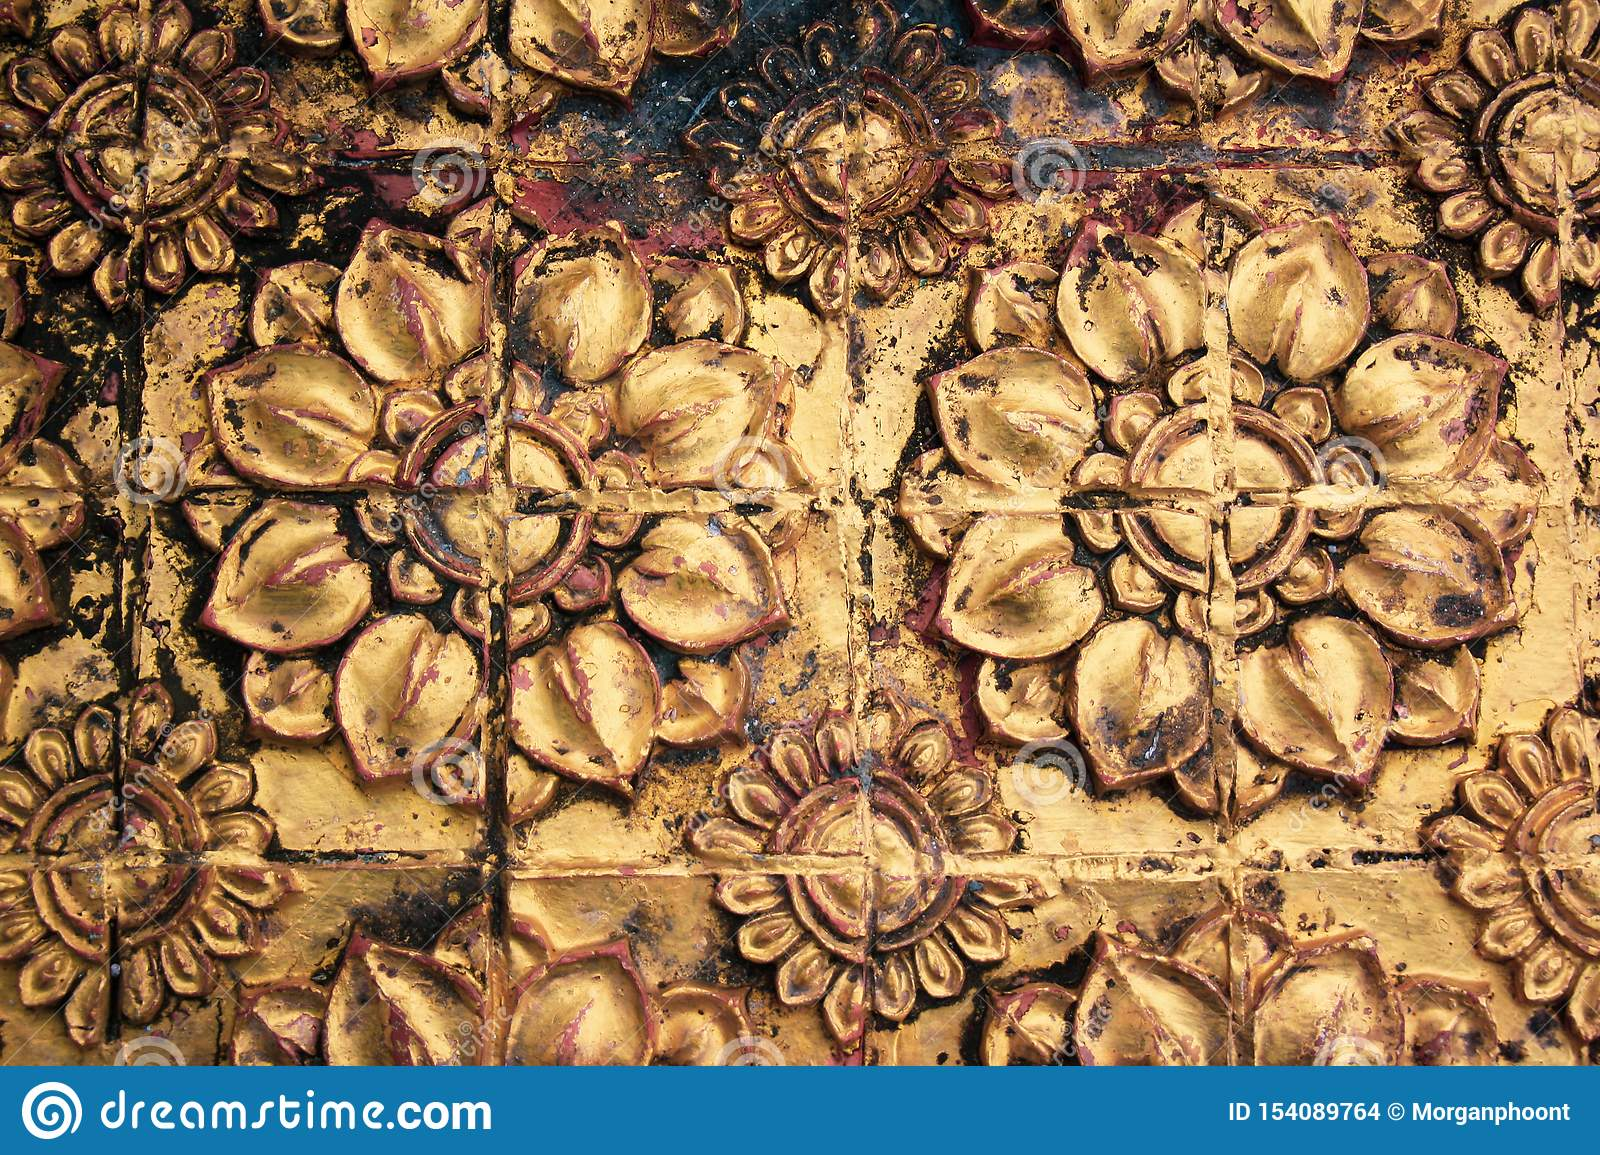 Antique Pattern of Stone Flowers Plated with Gold